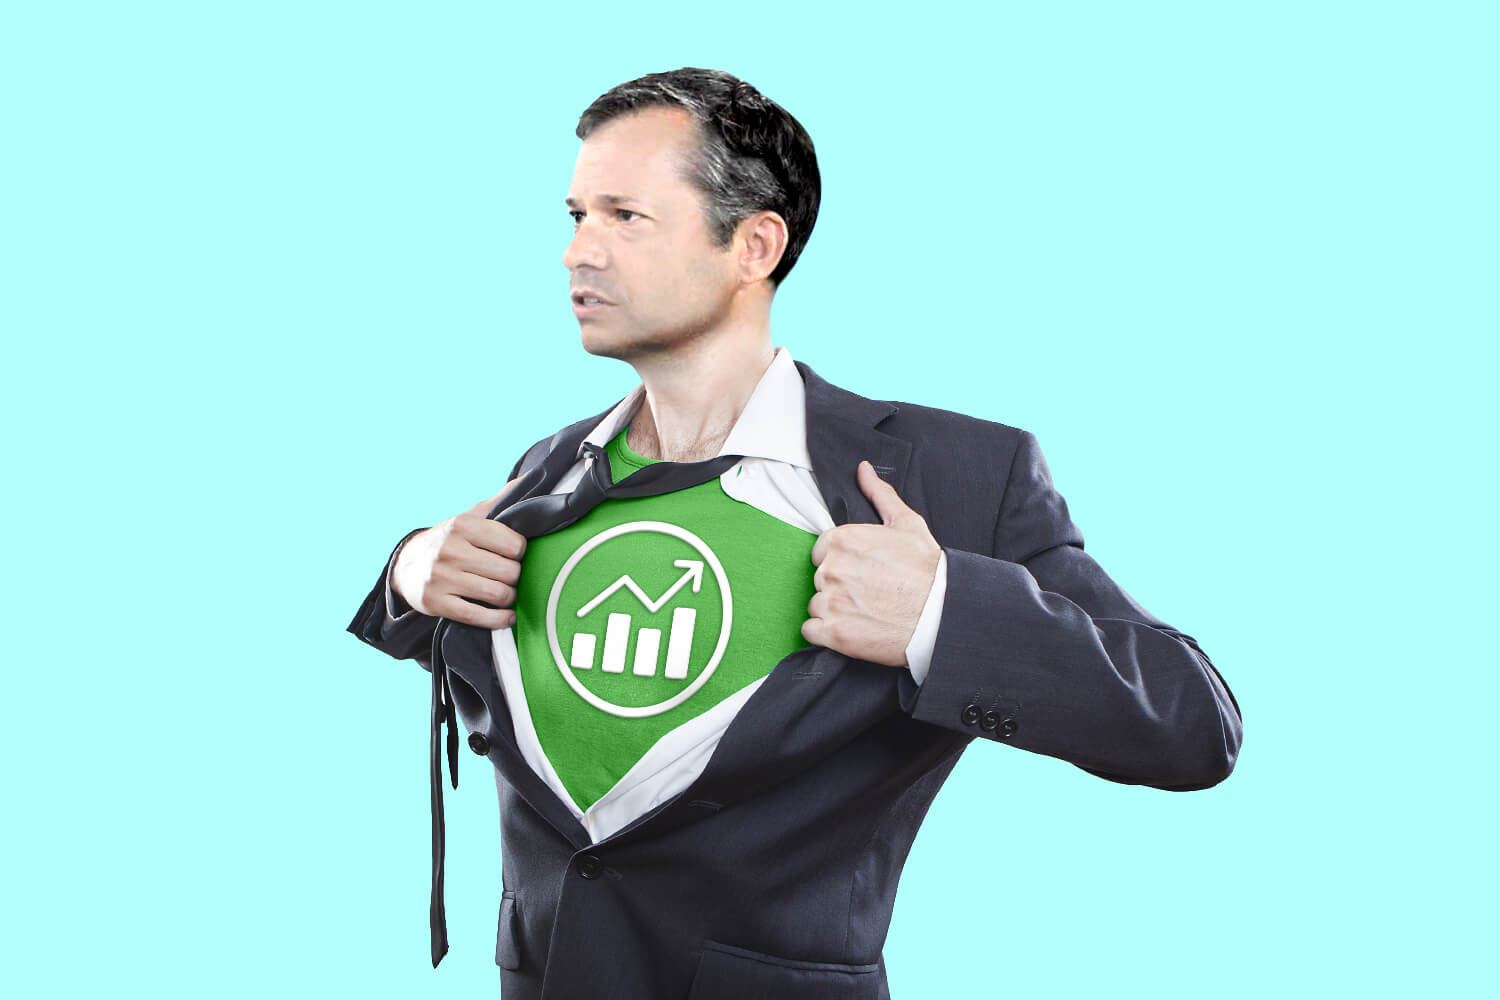 Meet Jason Moser, a Senior Investing Analyst for The Motley Fool, and a super-intelligent investing expert. He was kind enough to discuss with us some of the most important issues for investors. Ian McKinnon